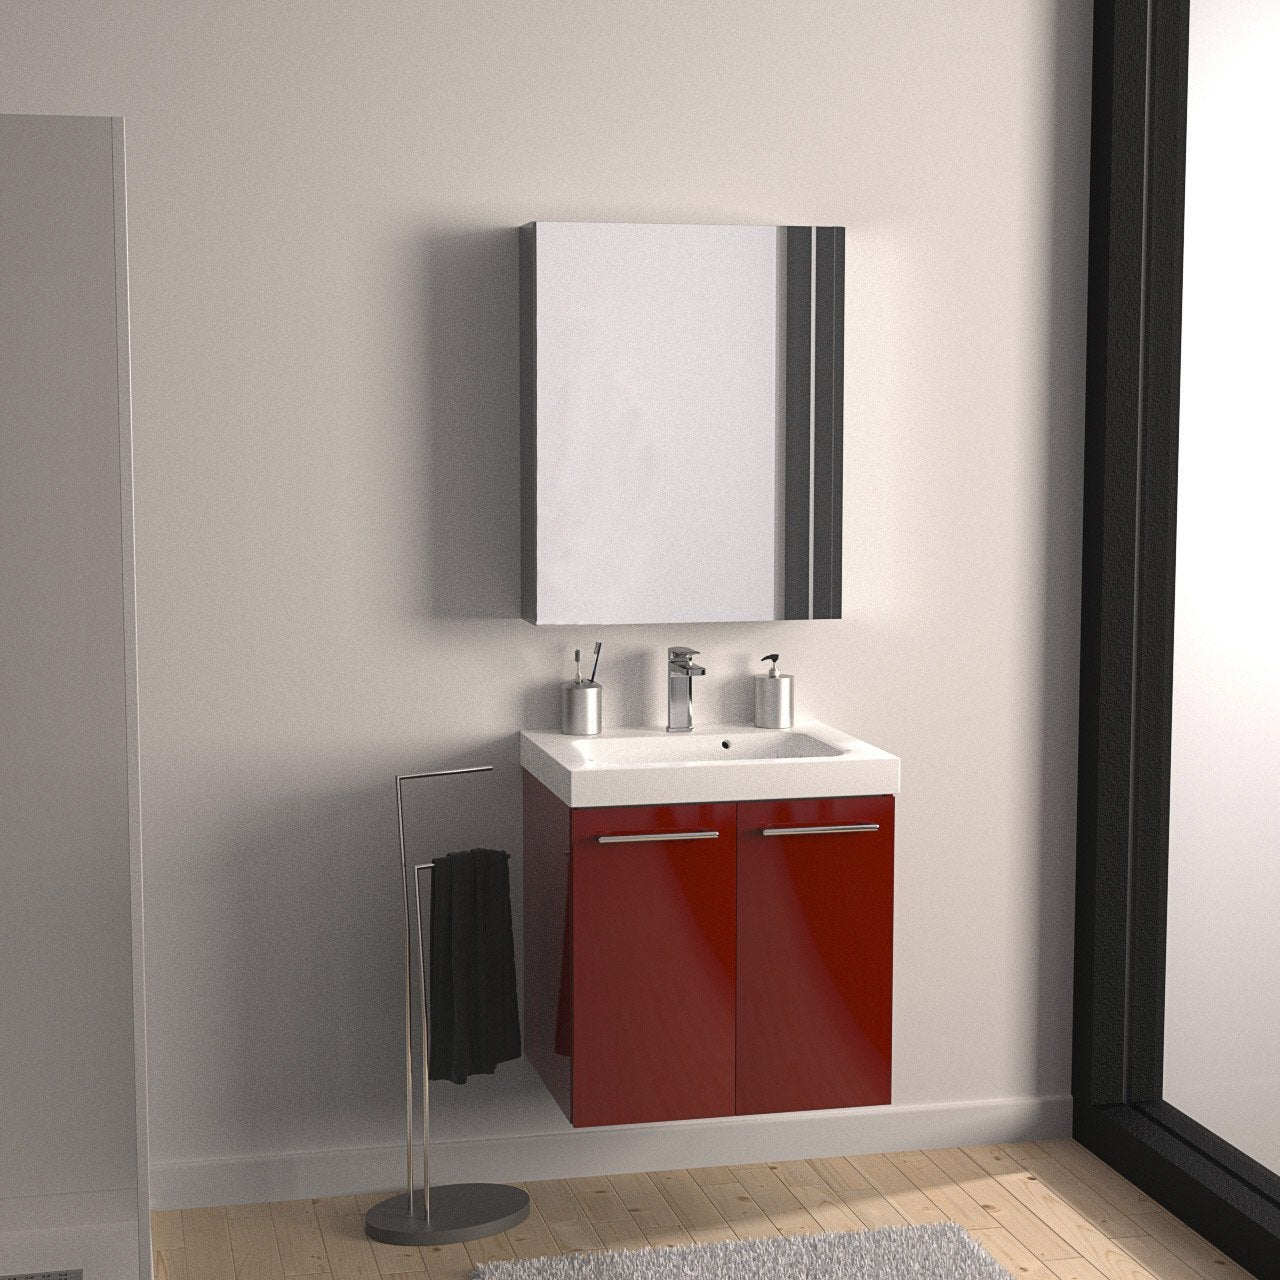 Meuble sous vasque x x cm rouge sensea for Meuble vasque leroy merlin